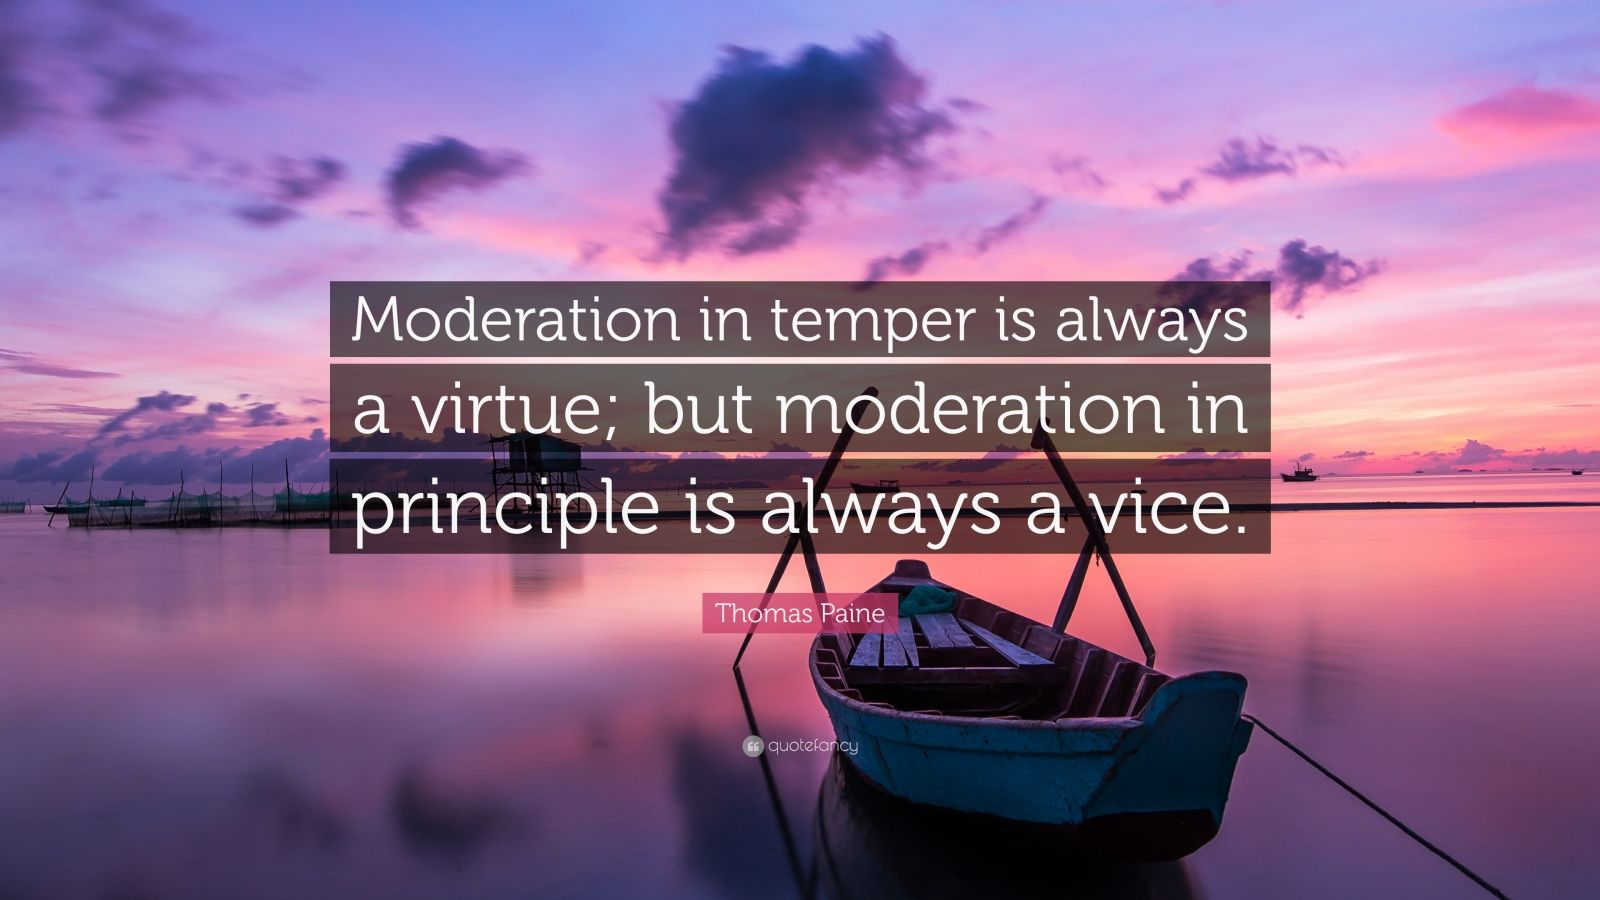 """Thomas Paine Quote: """"Moderation in temper is always a virtue; but moderation in principle is always a vice."""""""